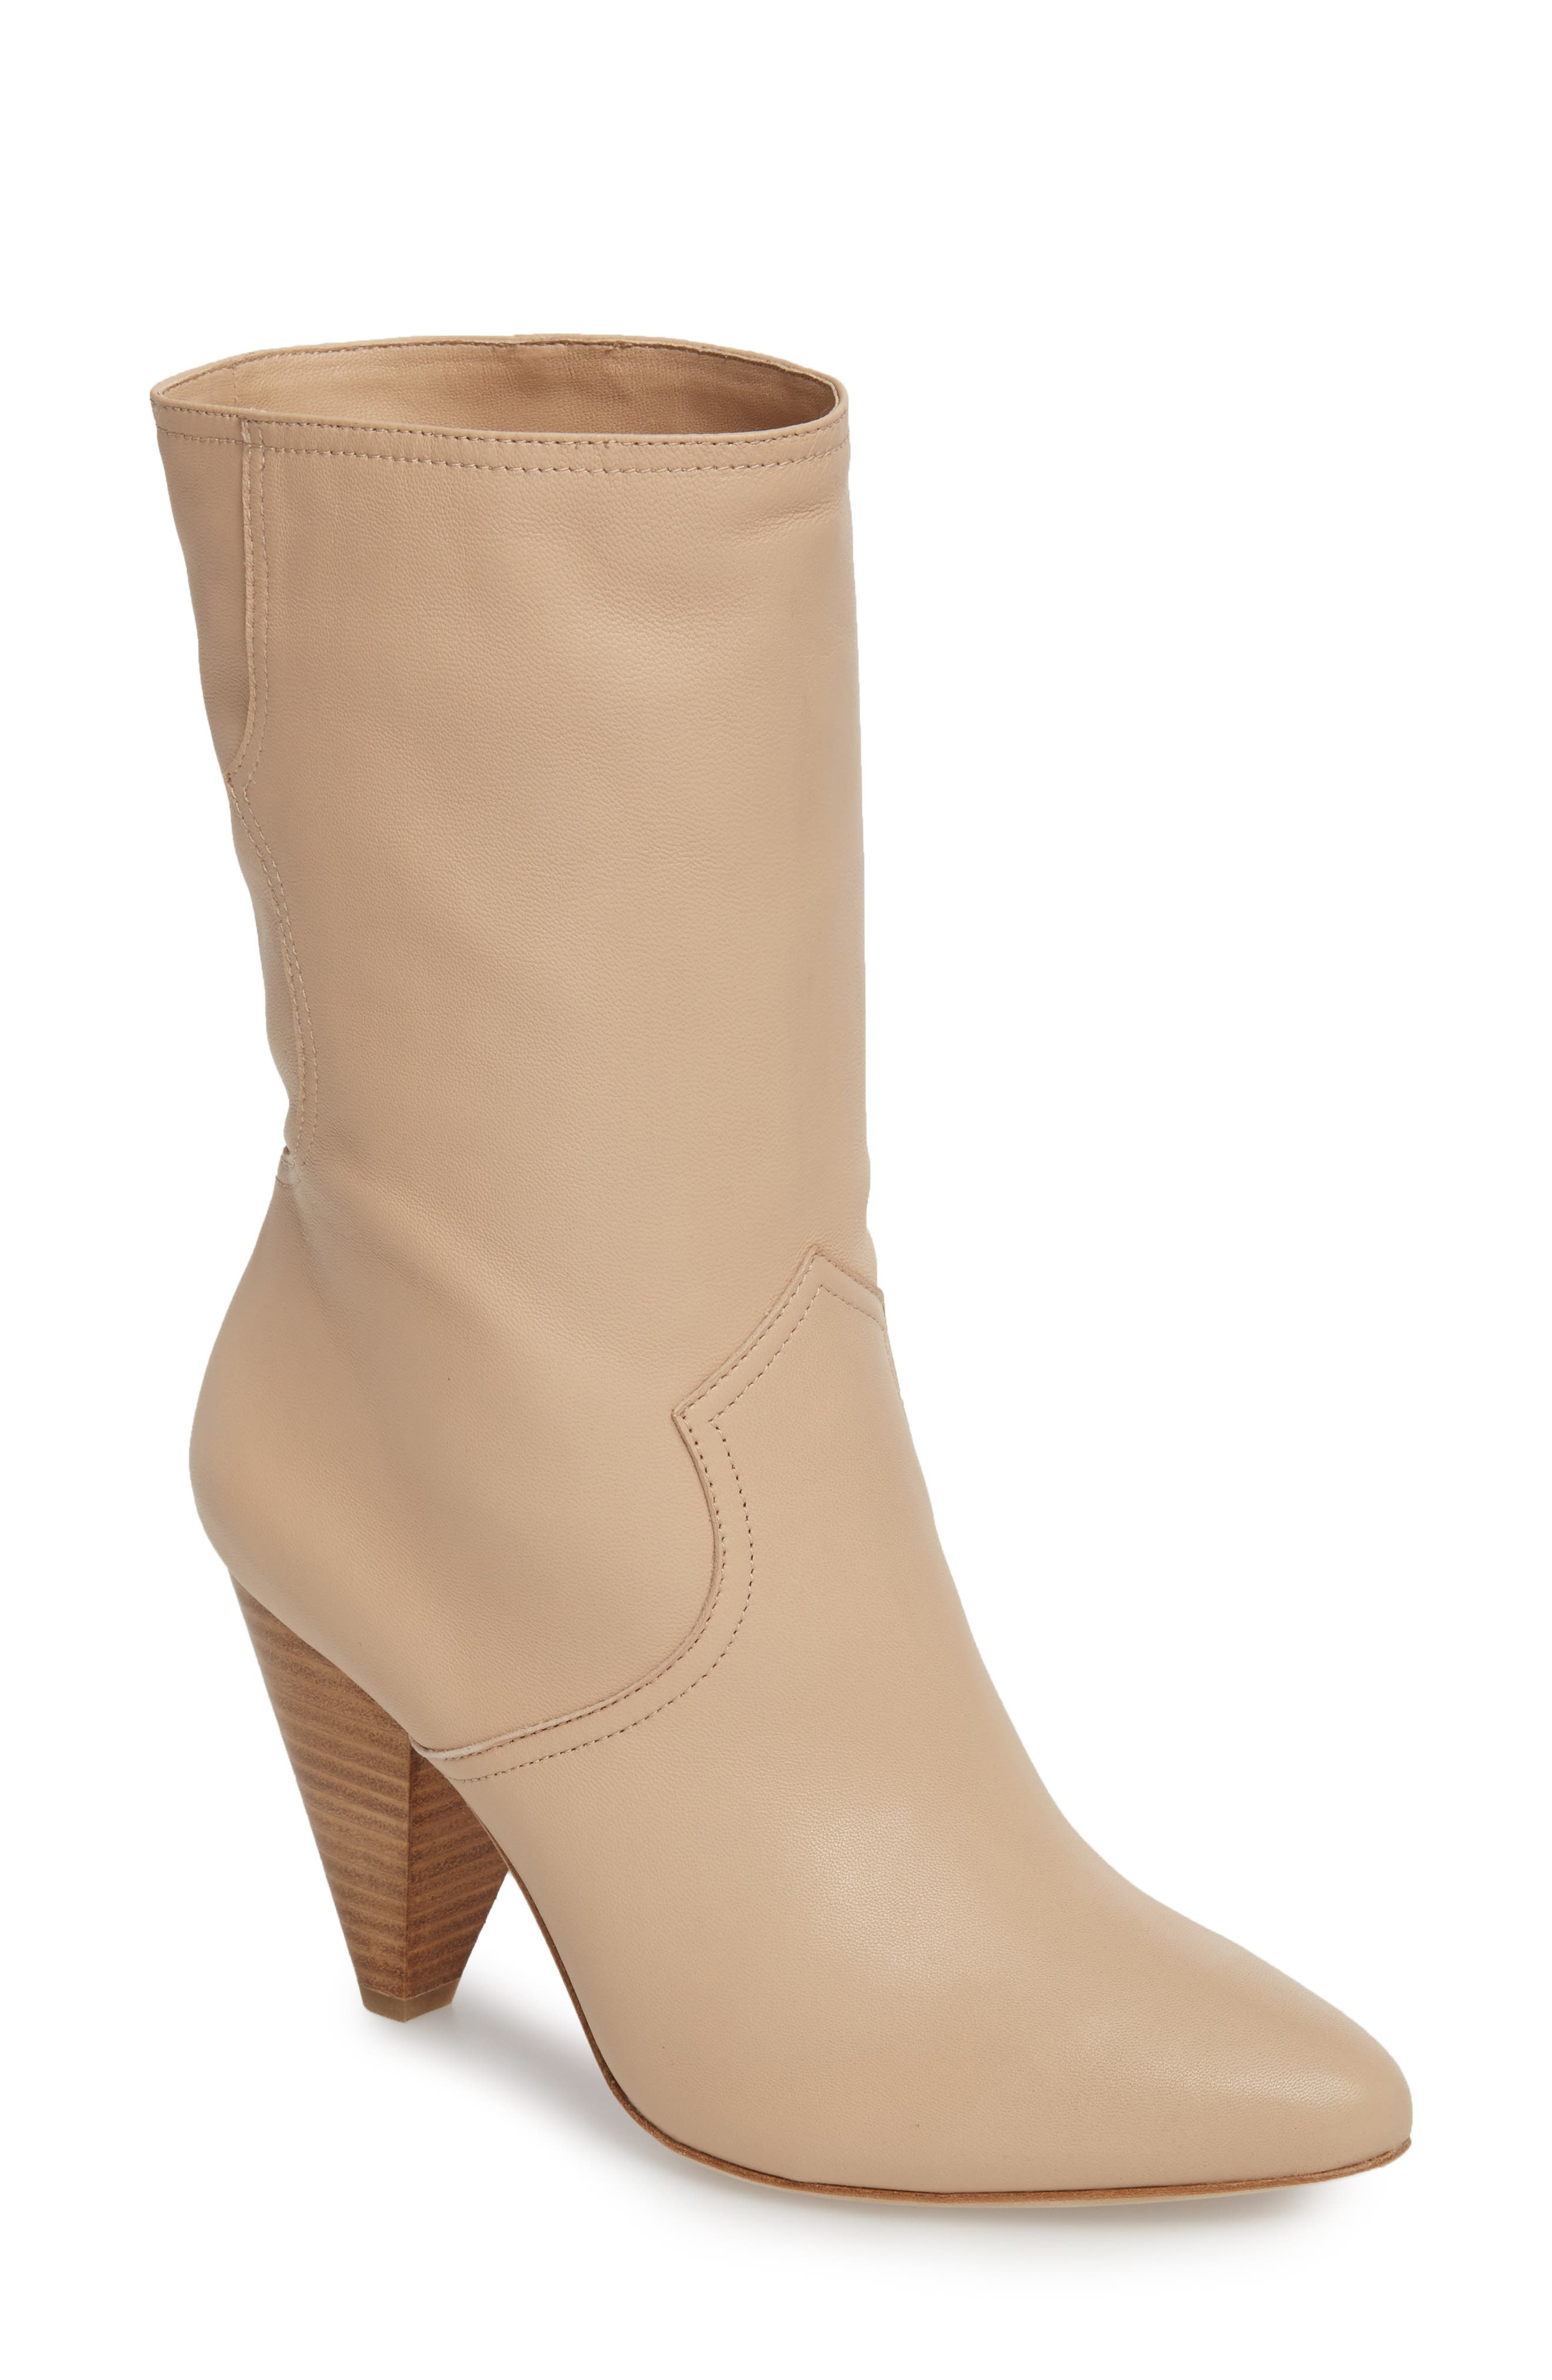 Gabbissy Almond Toe Boot,                             Main thumbnail 1, color,                             Blush